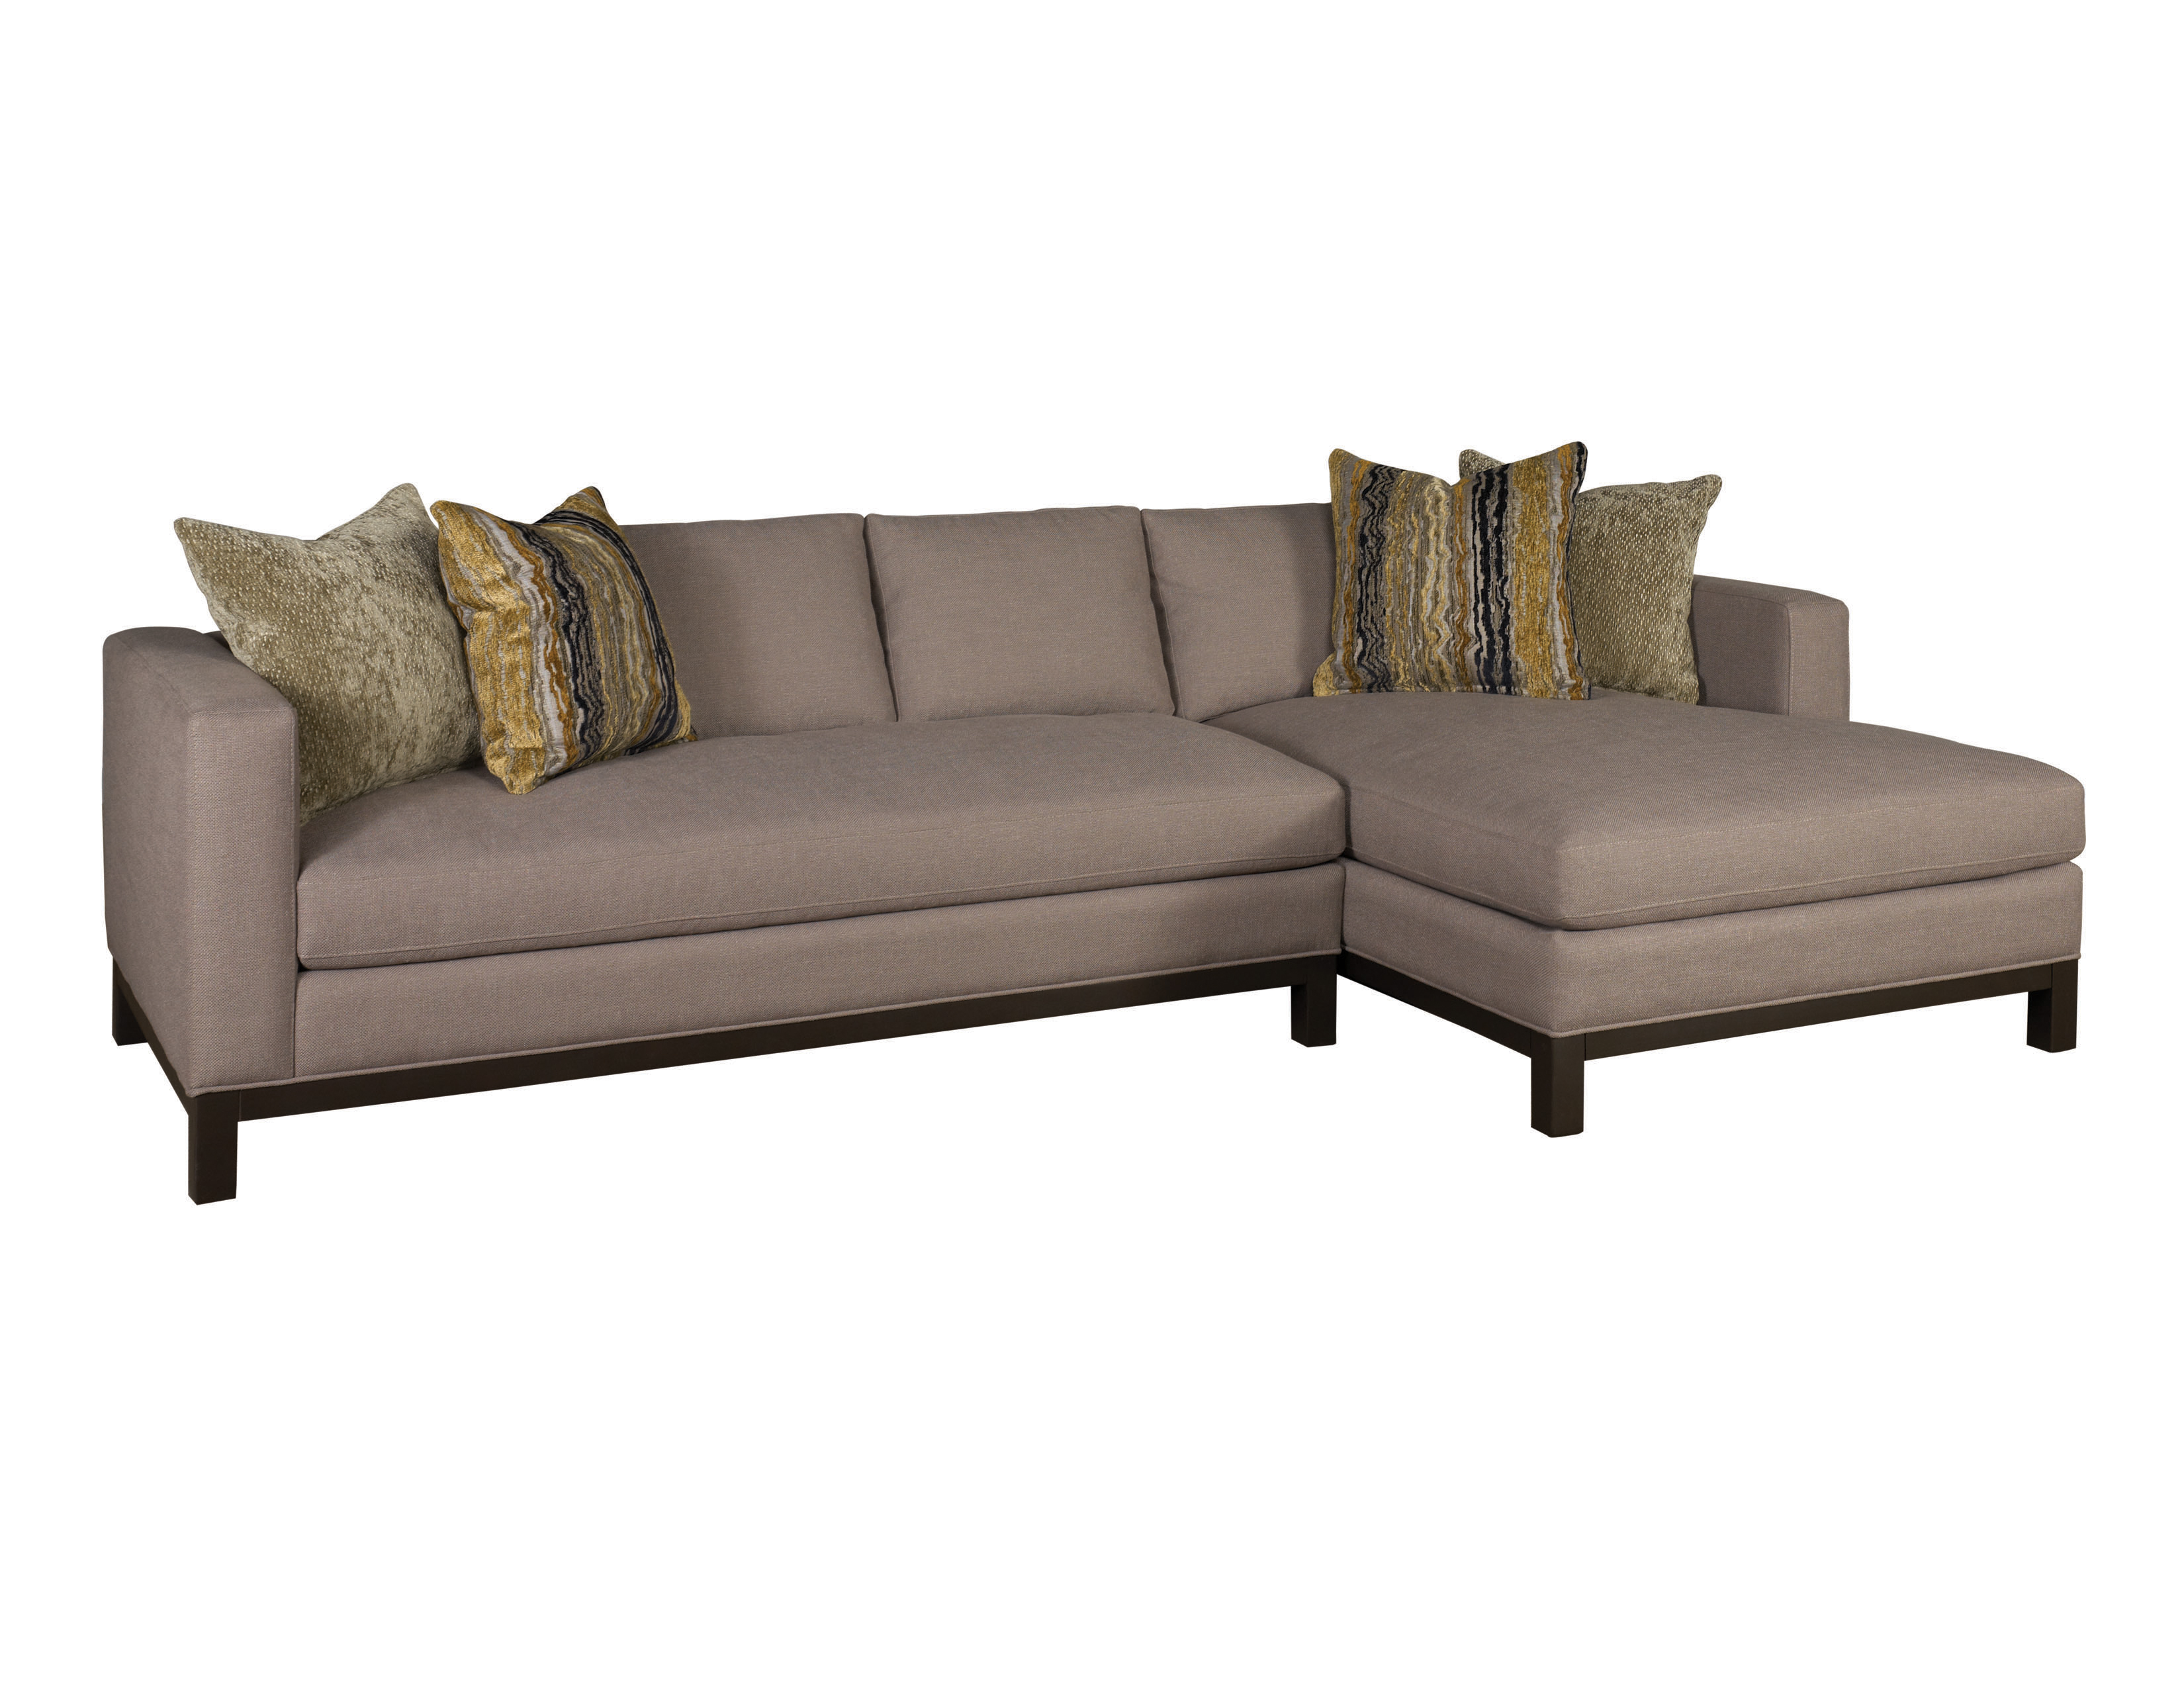 Genial Contemporary Sofa U0026 Sectional   Michael